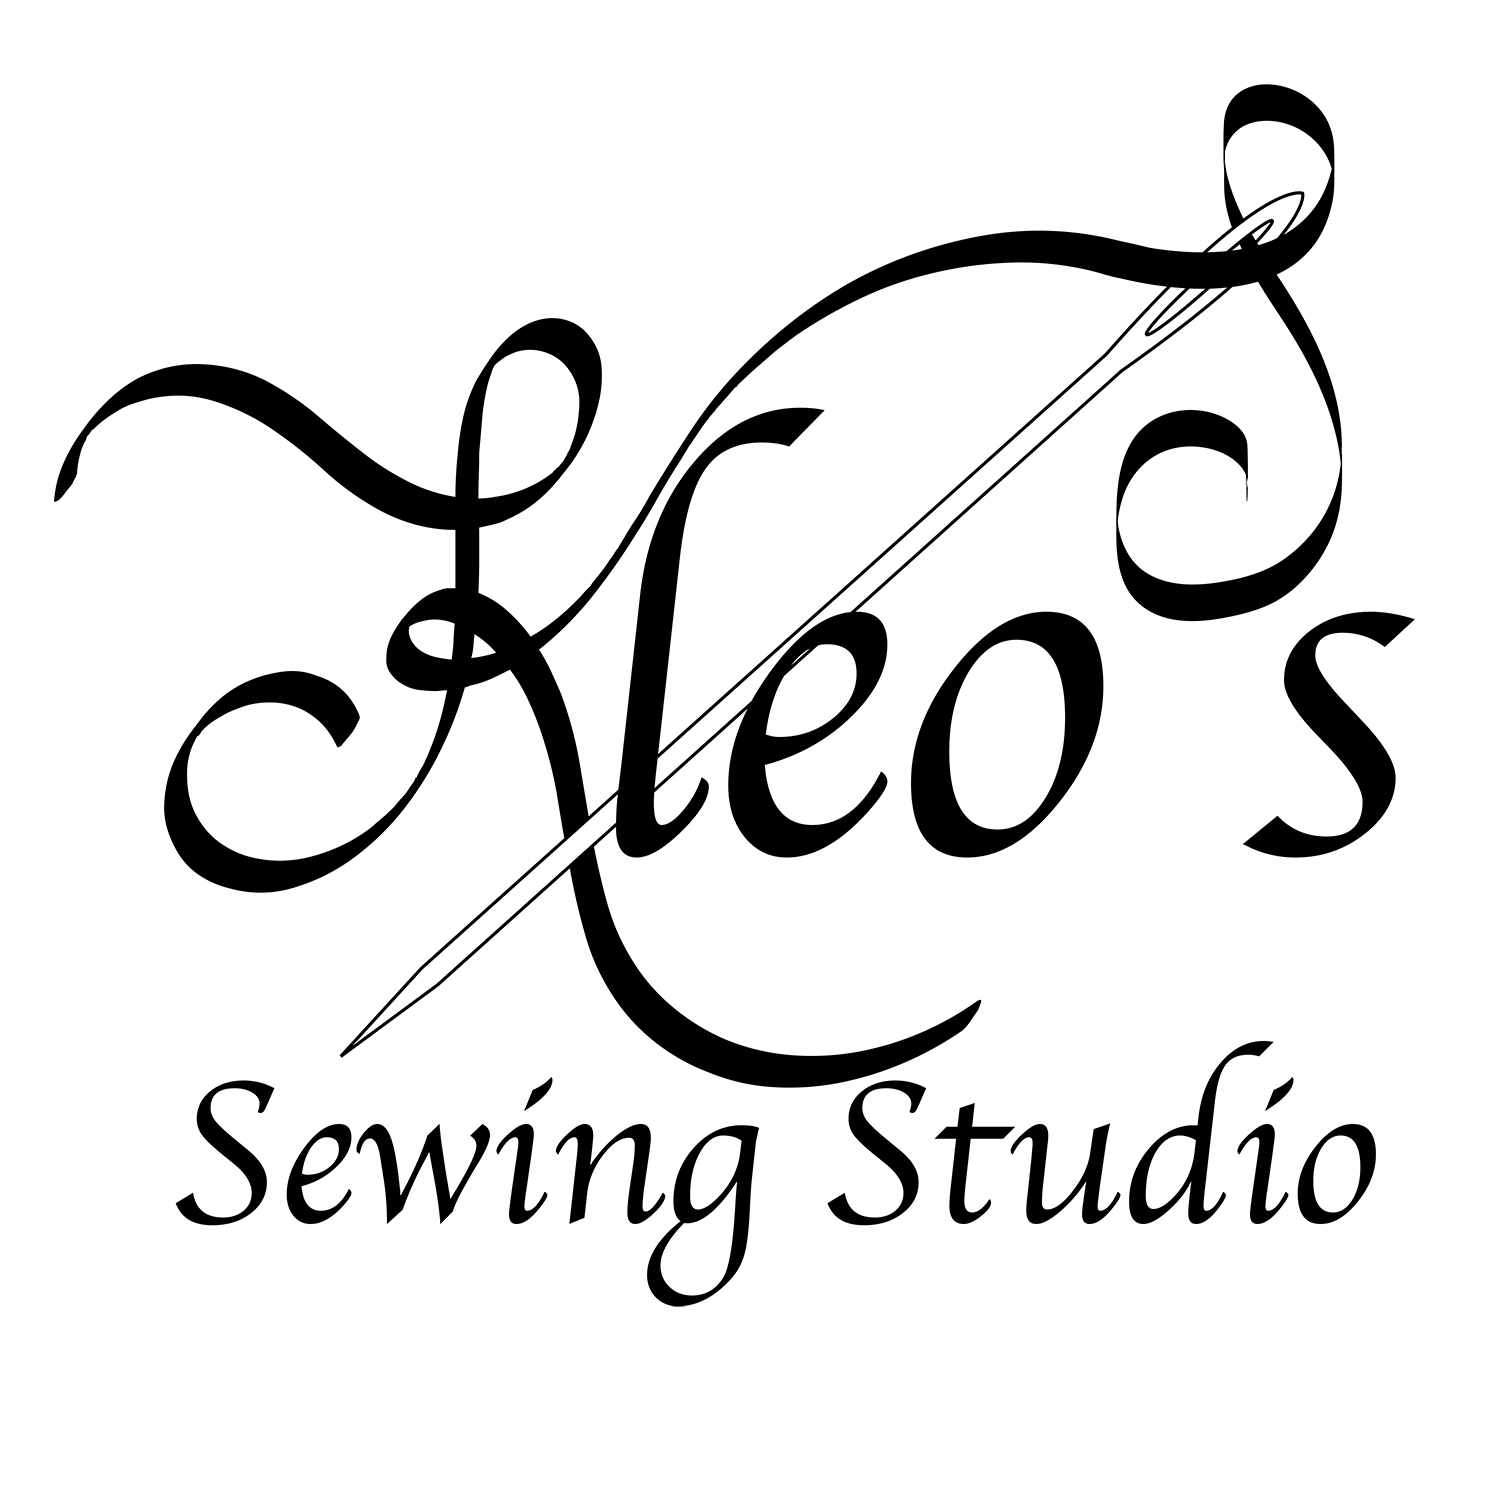 Kleo's Sewing Studio